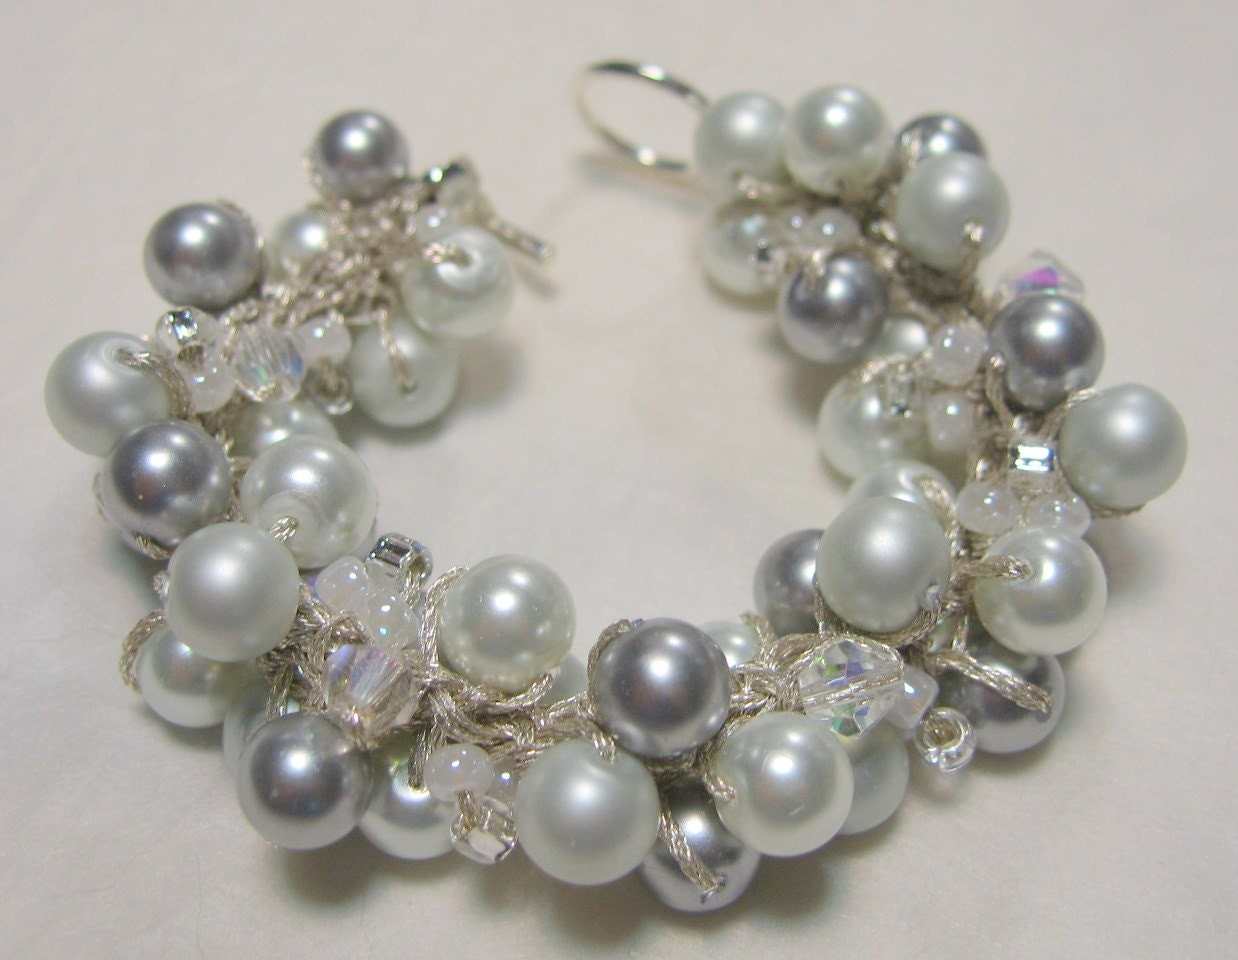 Wedding Bracelet - Silver Moon Snow White, Satin Silver Grey Pearl Cluster - Unique Hand Knit Jewerly